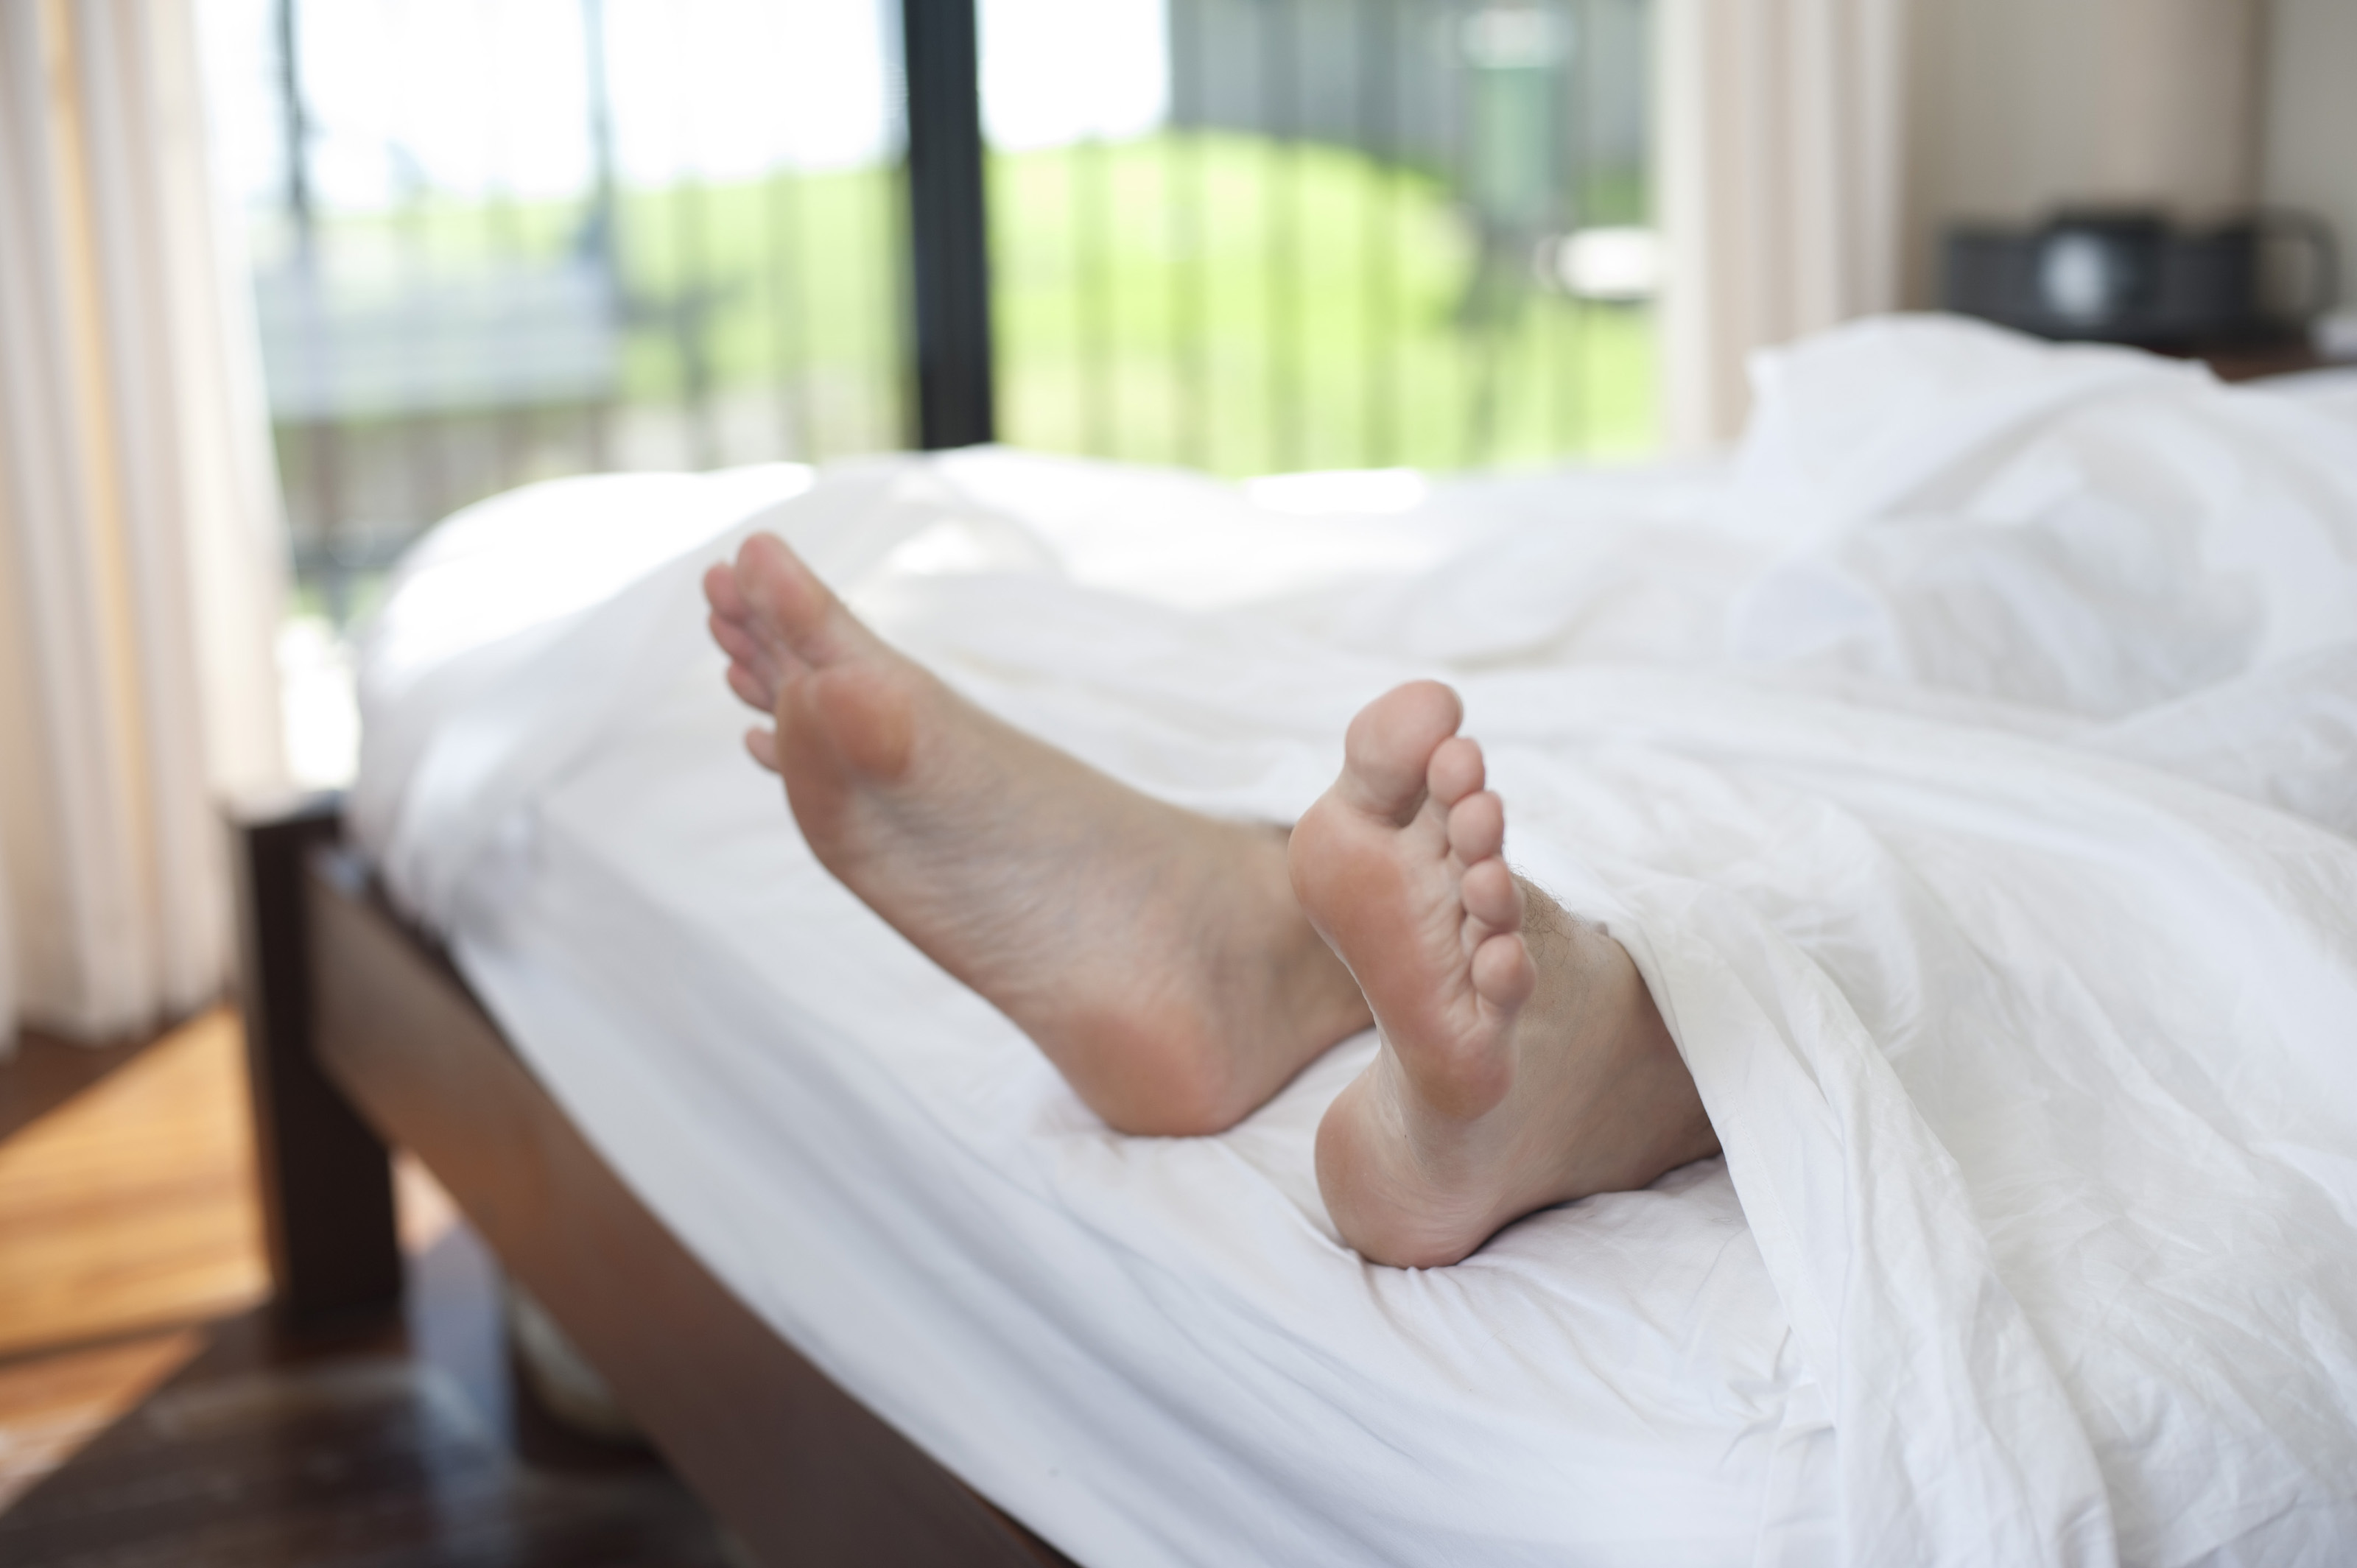 man having a weekend liein in his bed with a view of his feet